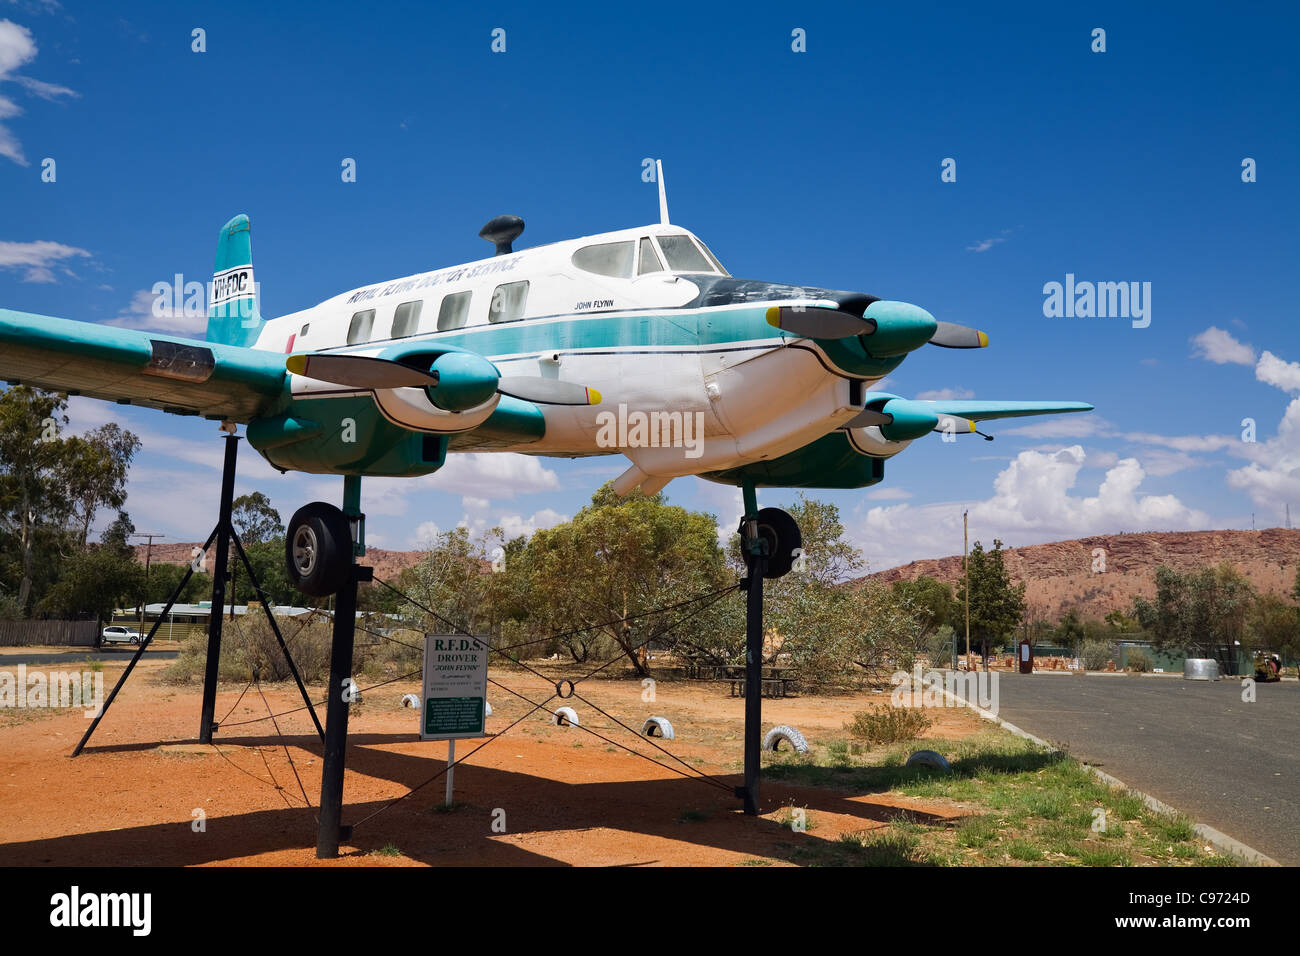 Royal Flying Doctor Service exhibit at the Alice Springs Aviation Museum.  Alice Springs, Northern Territory, Austtralia - Stock Image